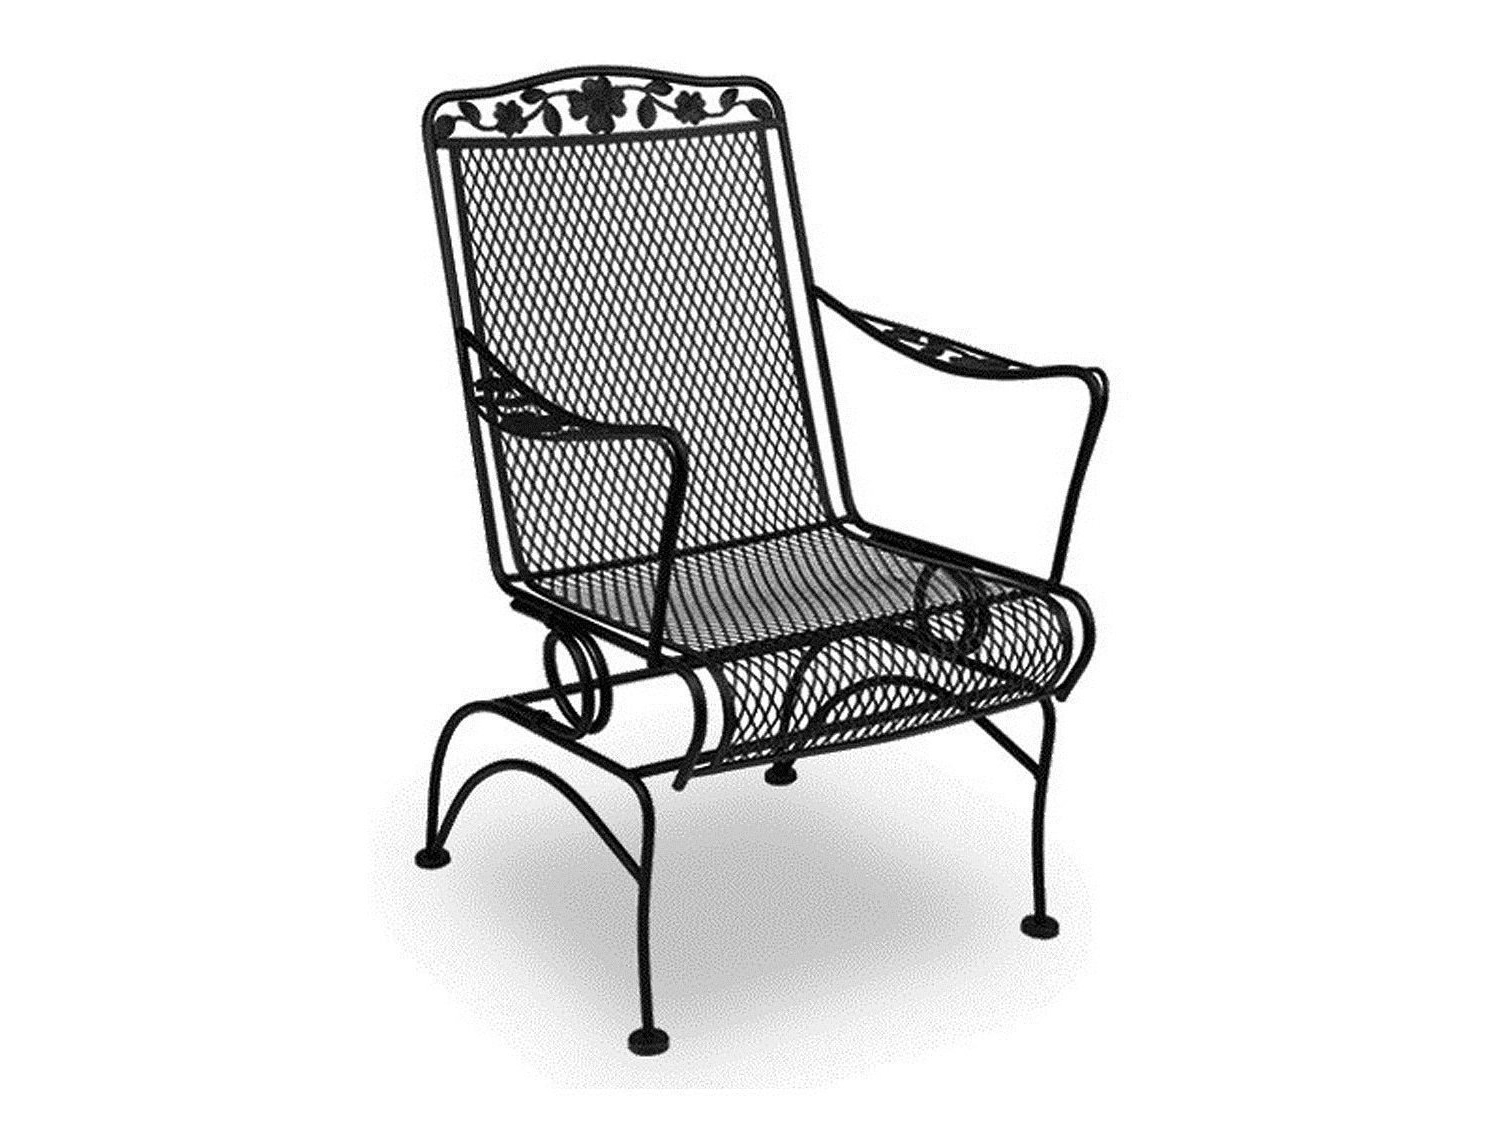 Iron Rocking Patio Chairs Regarding Preferred Wrought Iron Rocking Chair Patio Furniture Design Ideas – Arelisapril (Gallery 8 of 15)